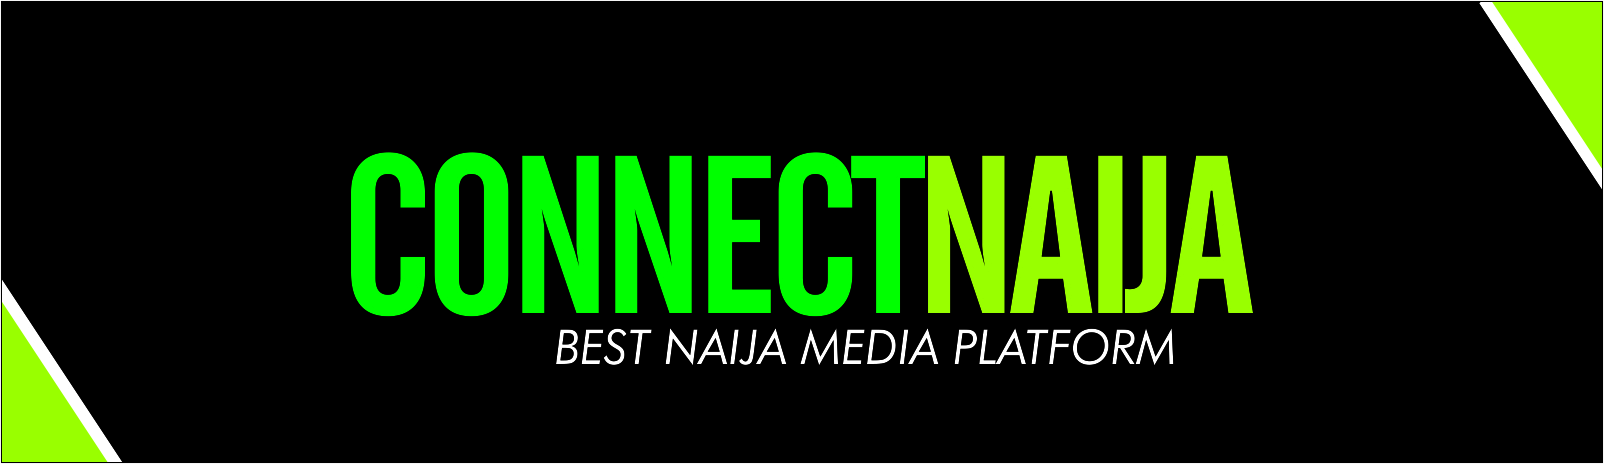 Connectnaija v2.0